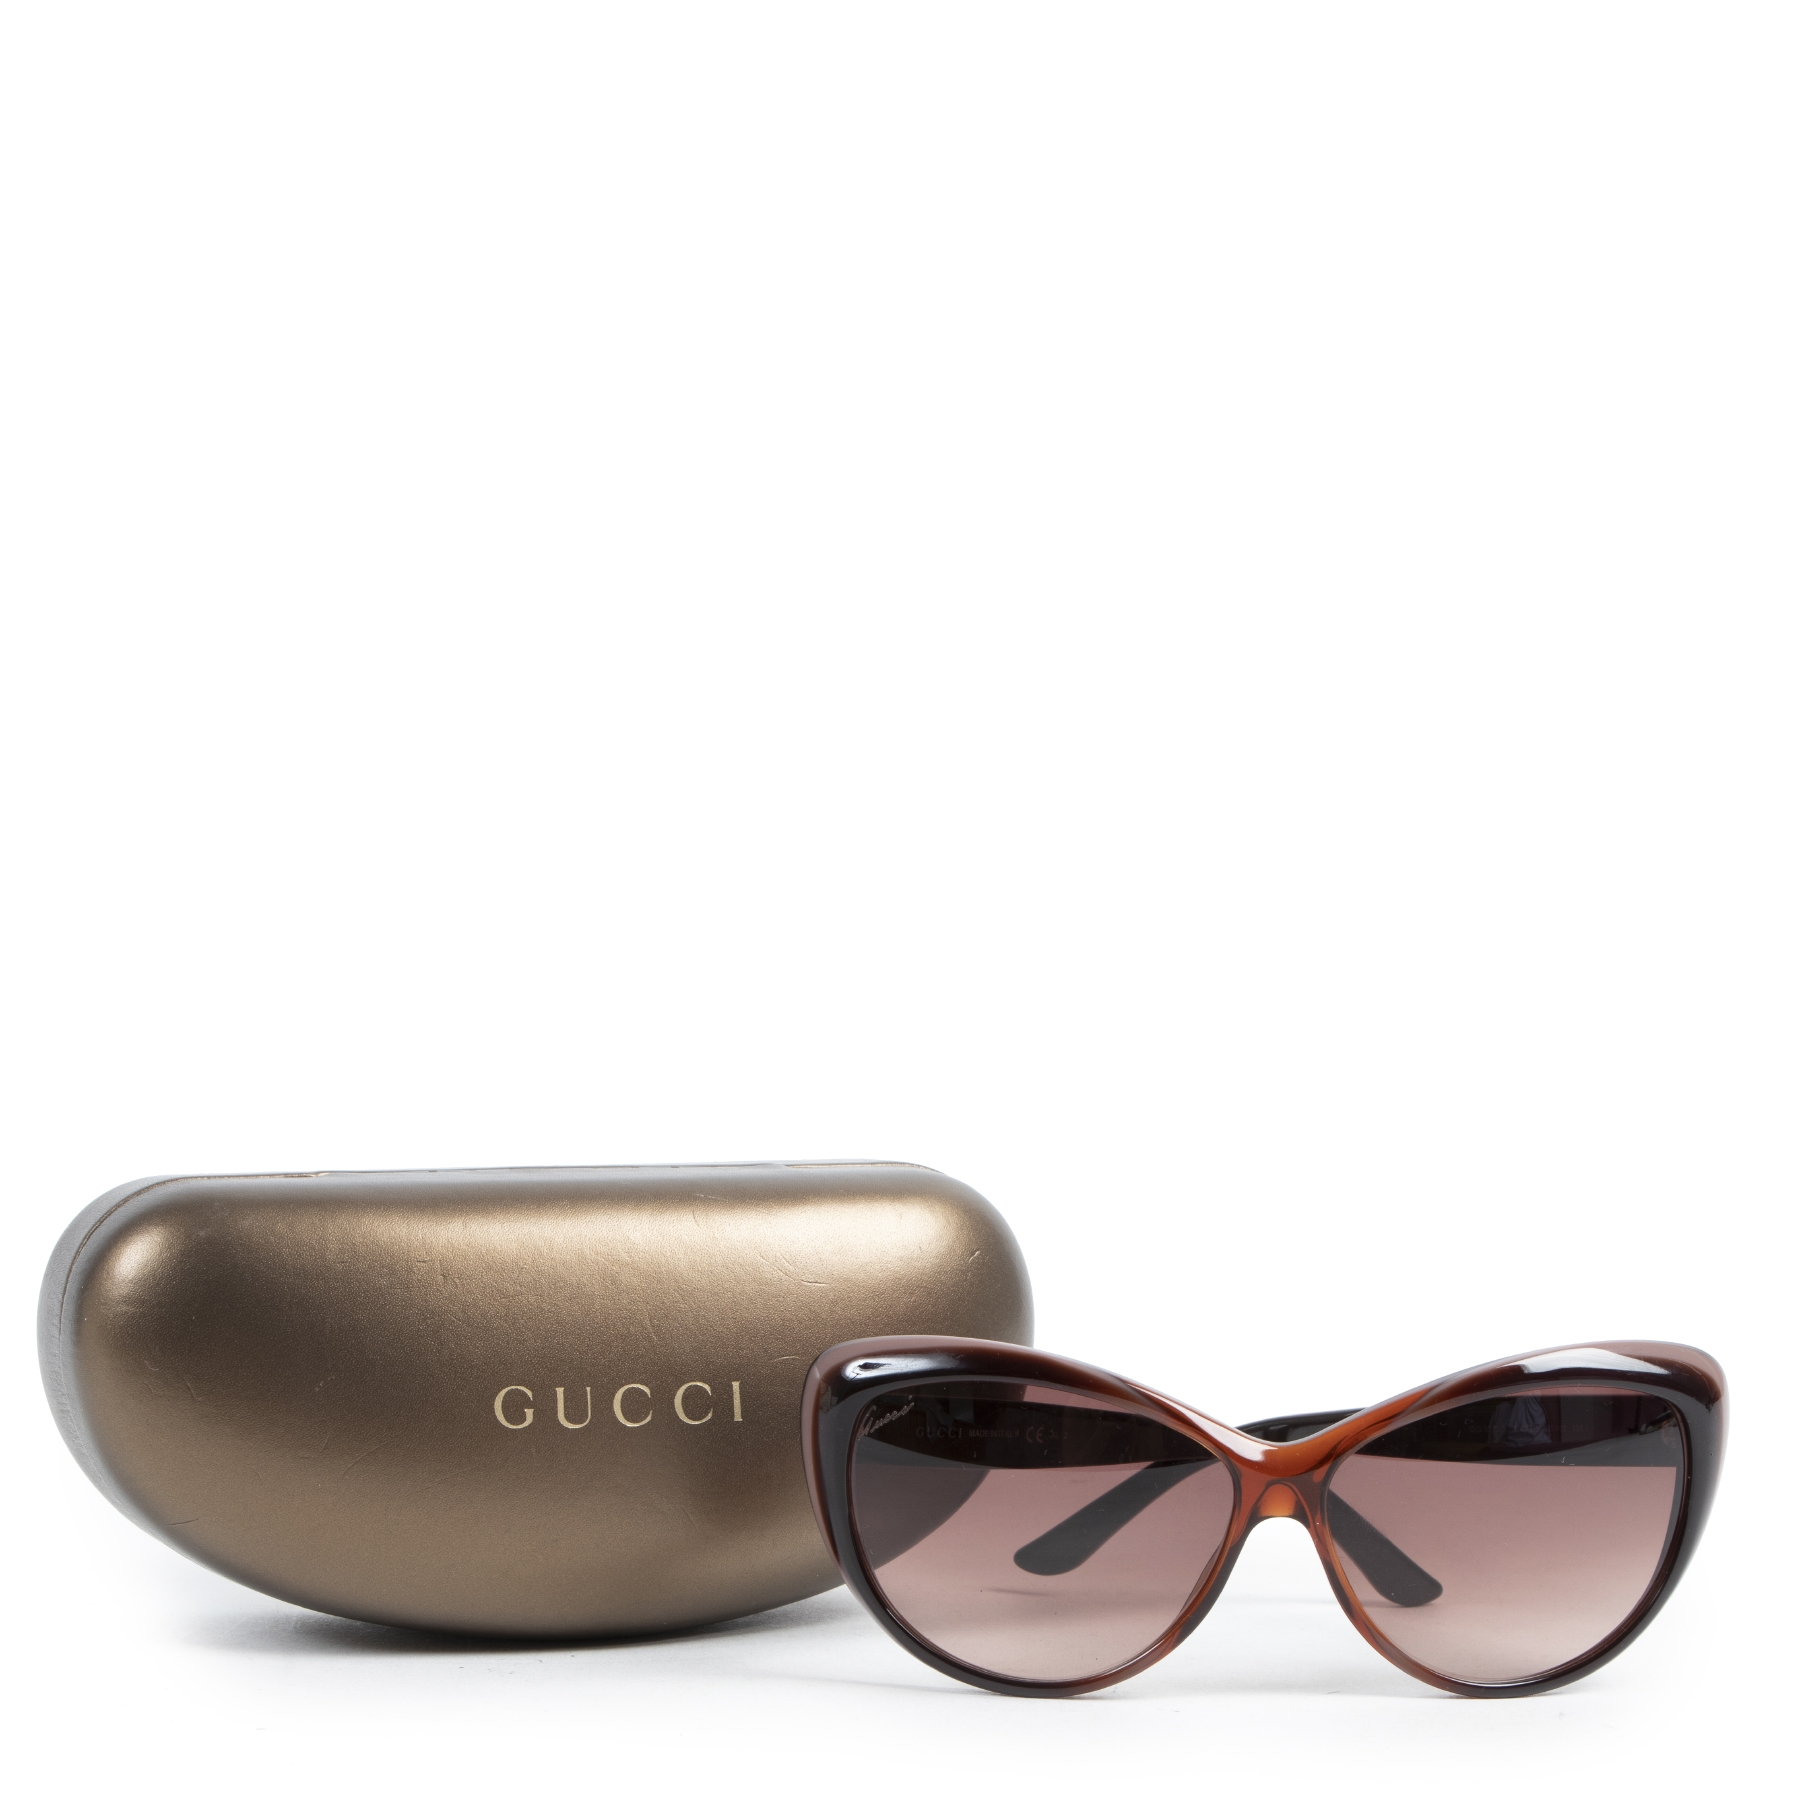 Gucci Brown Cateye Sunglasses for sale at Labellov